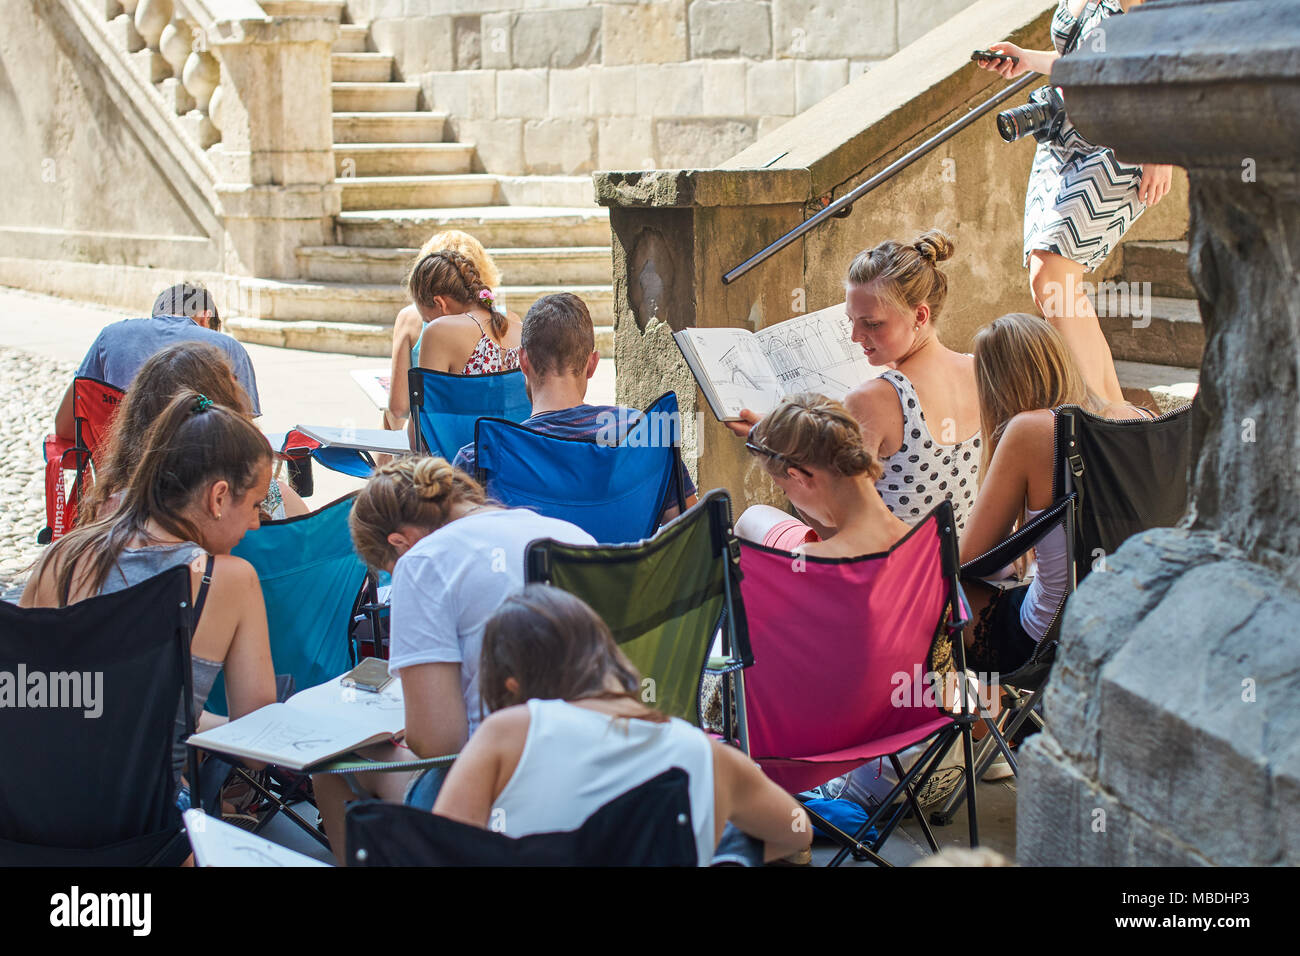 Architecture students drawing architectural details during en plein air assignment near Basilica of Santa Maria Maggiore in historical Upper Town - Stock Image